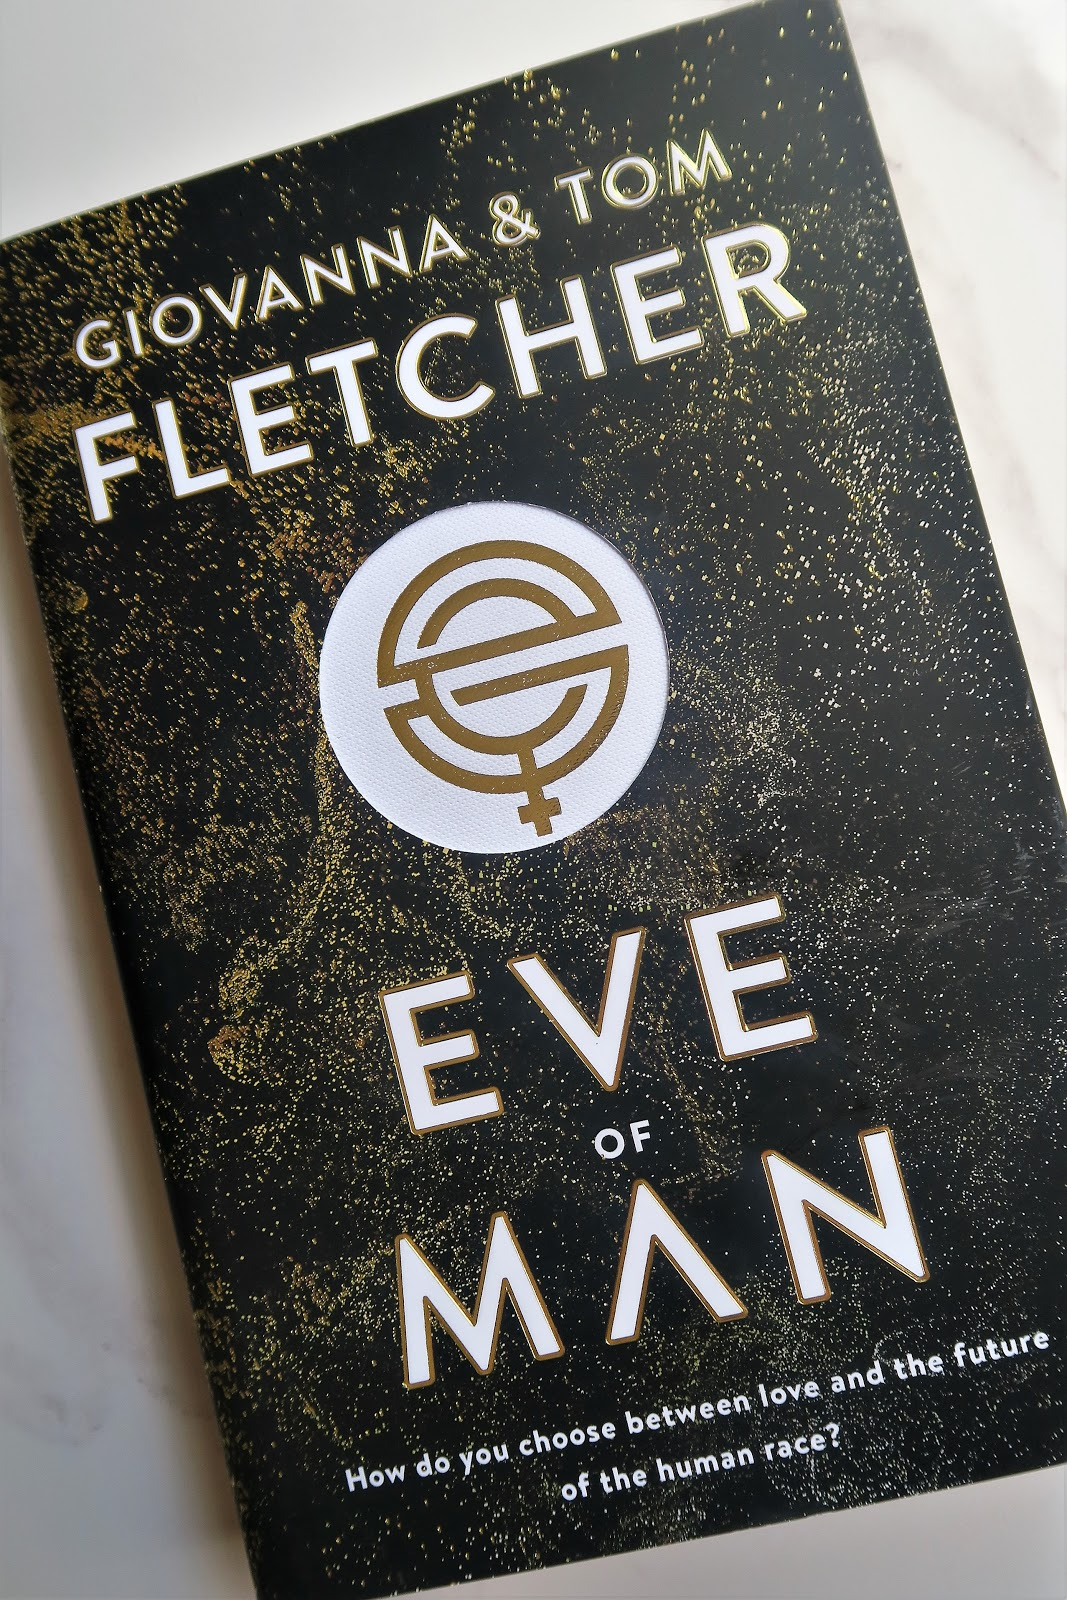 eve of man fletcher review video liquid grain liquidgrain